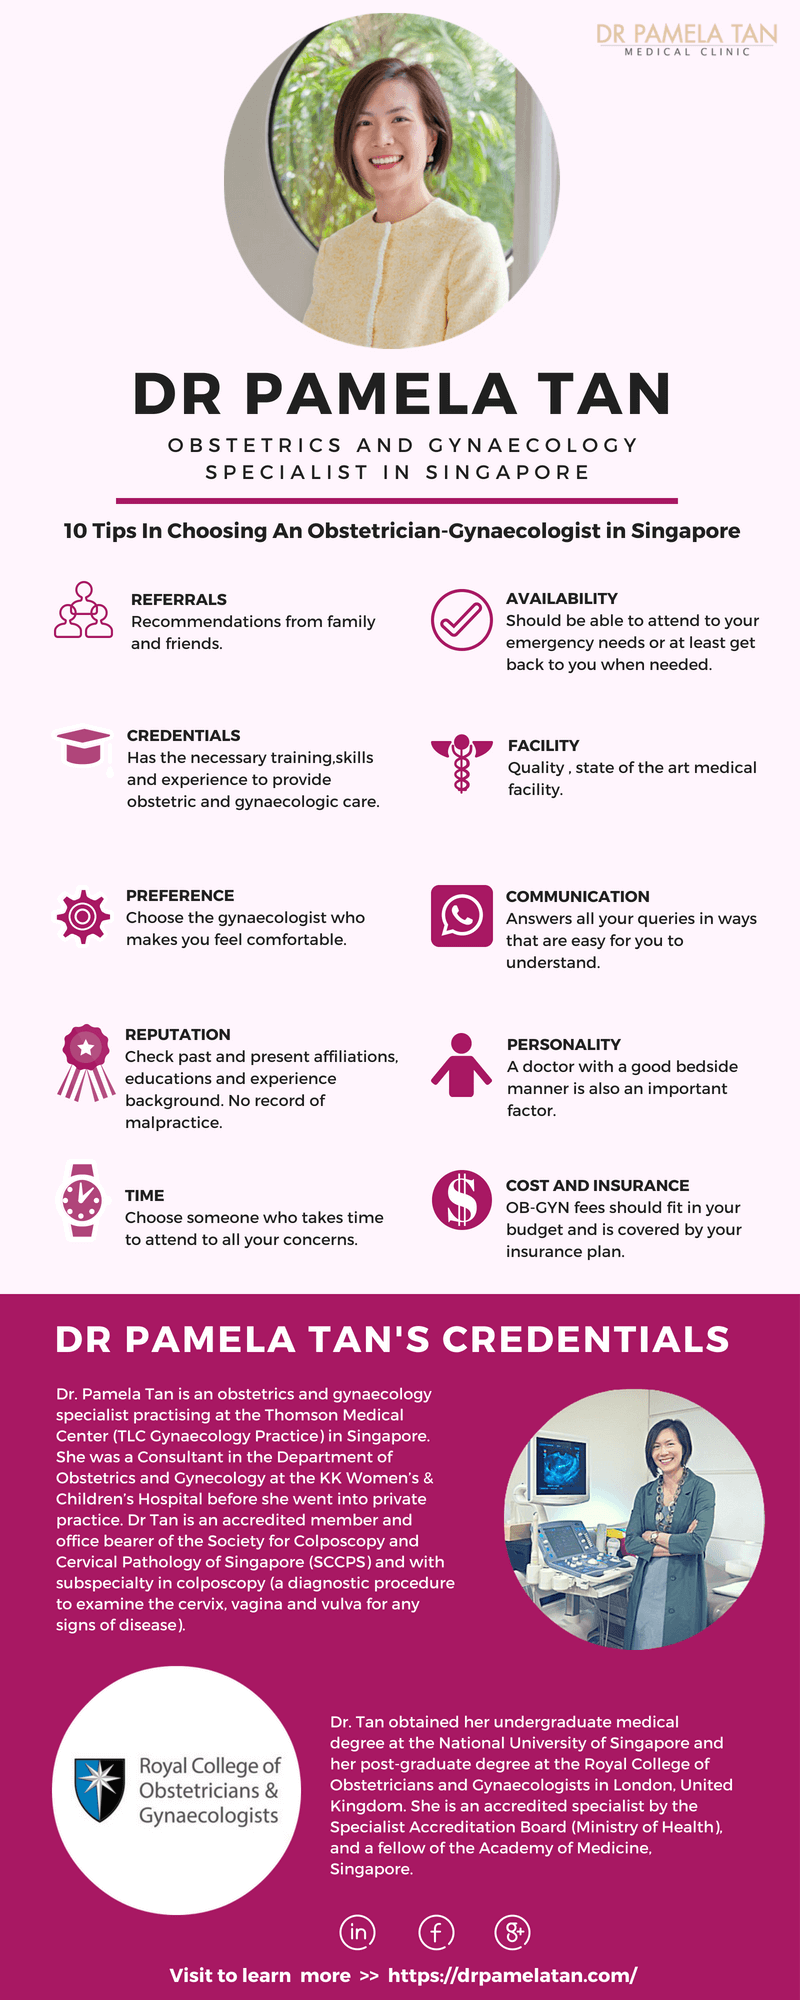 10 Tips-Choosing Obstetrician Gynecologist|Singapore(Infographic)